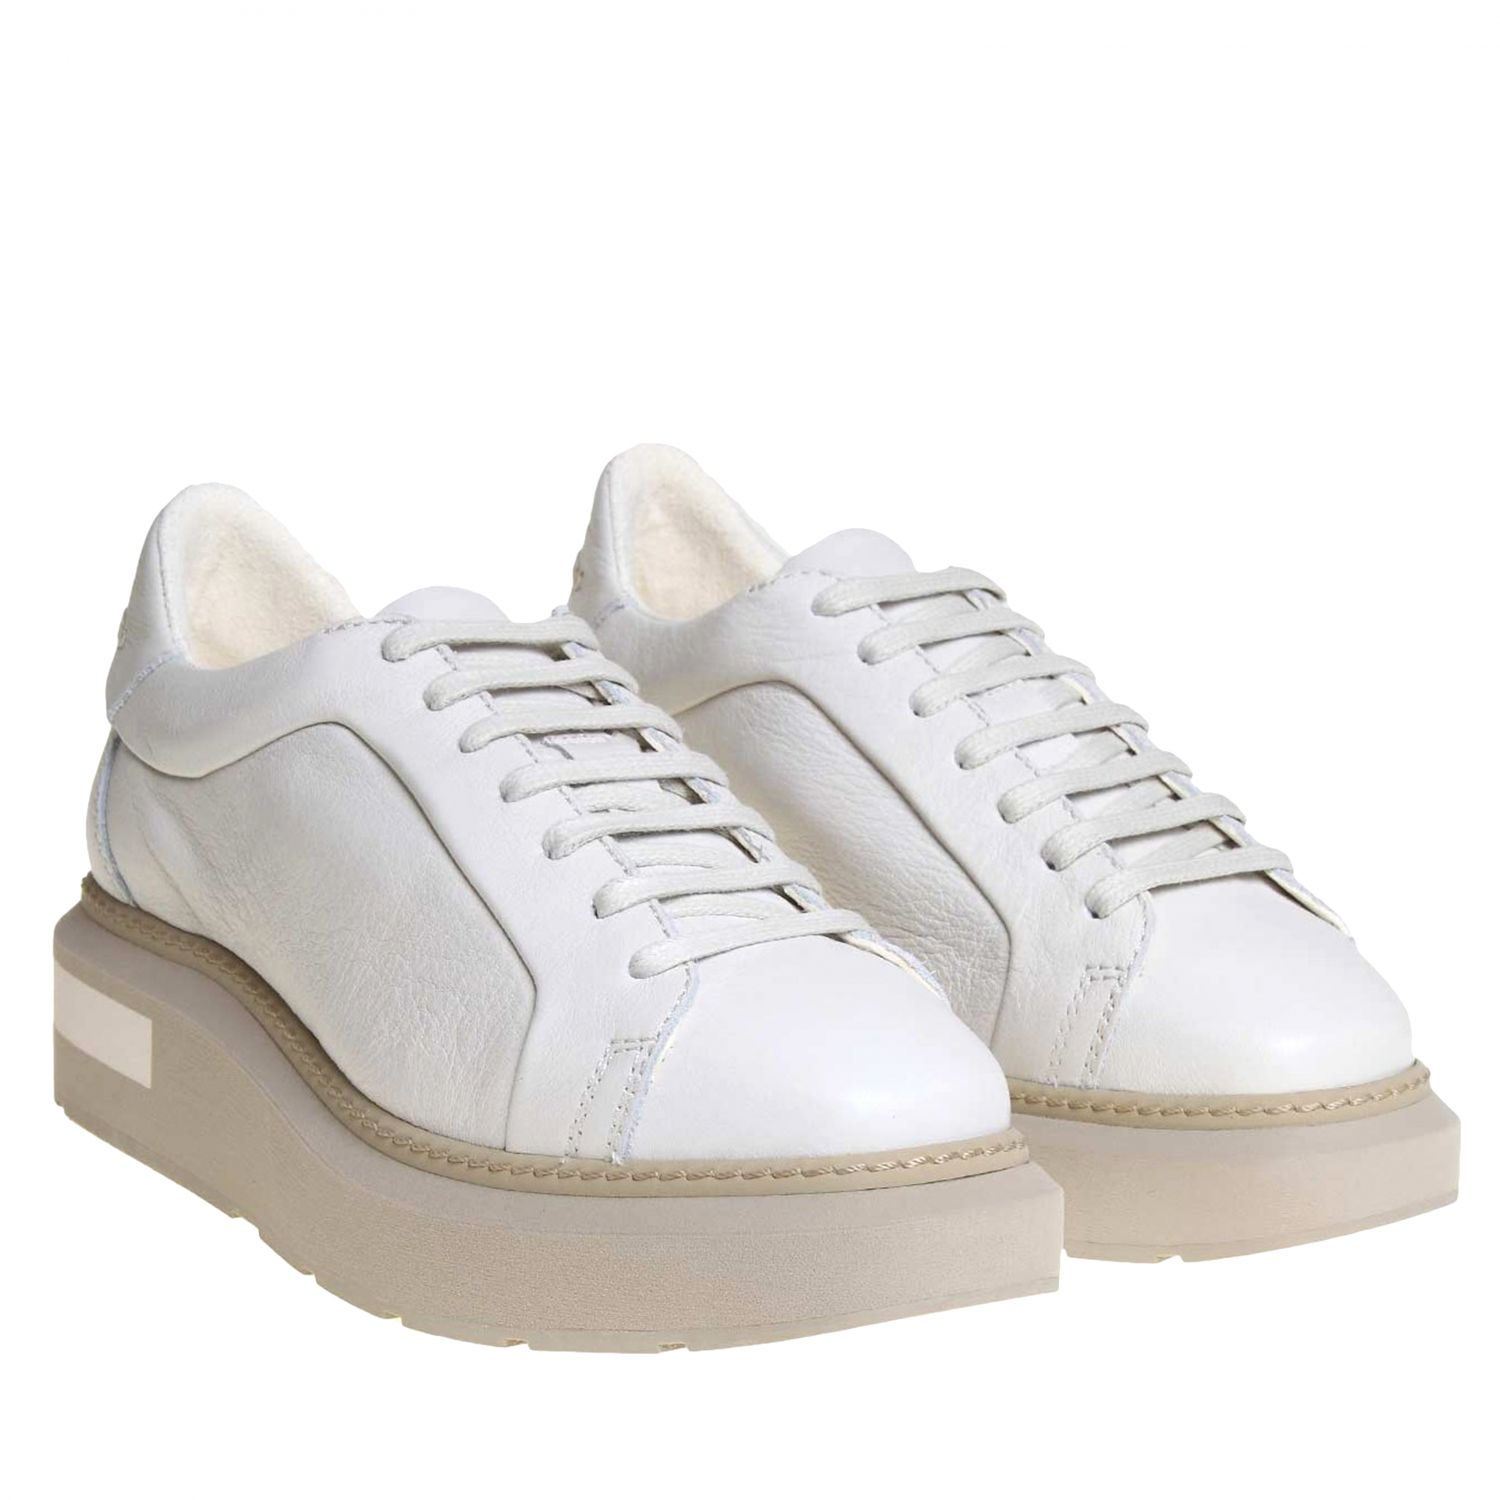 Sneakers Manuel Barcelò: Sneakers women Manuel BarcelÒ white 2